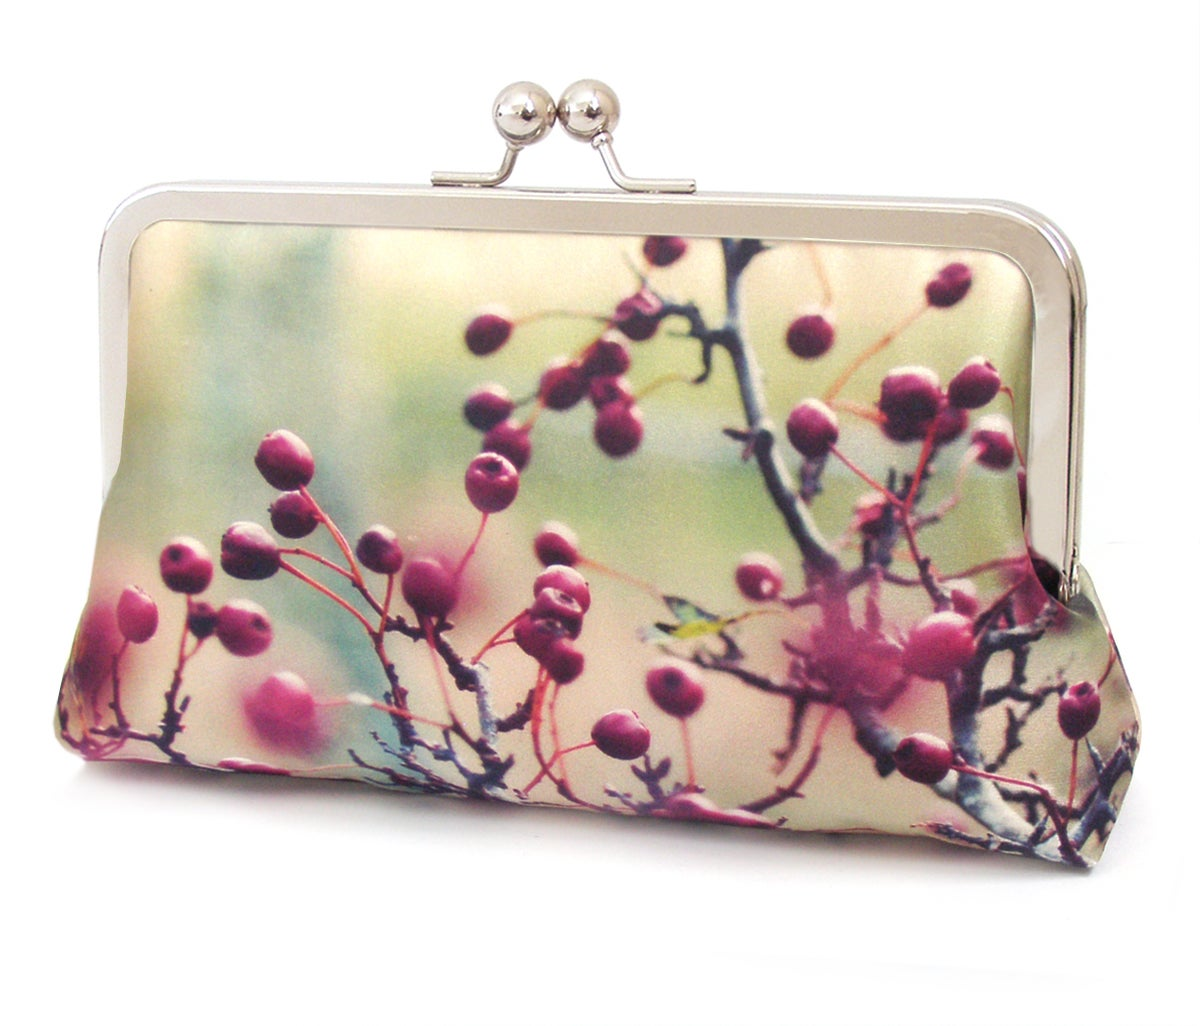 Image of Red berries clutch